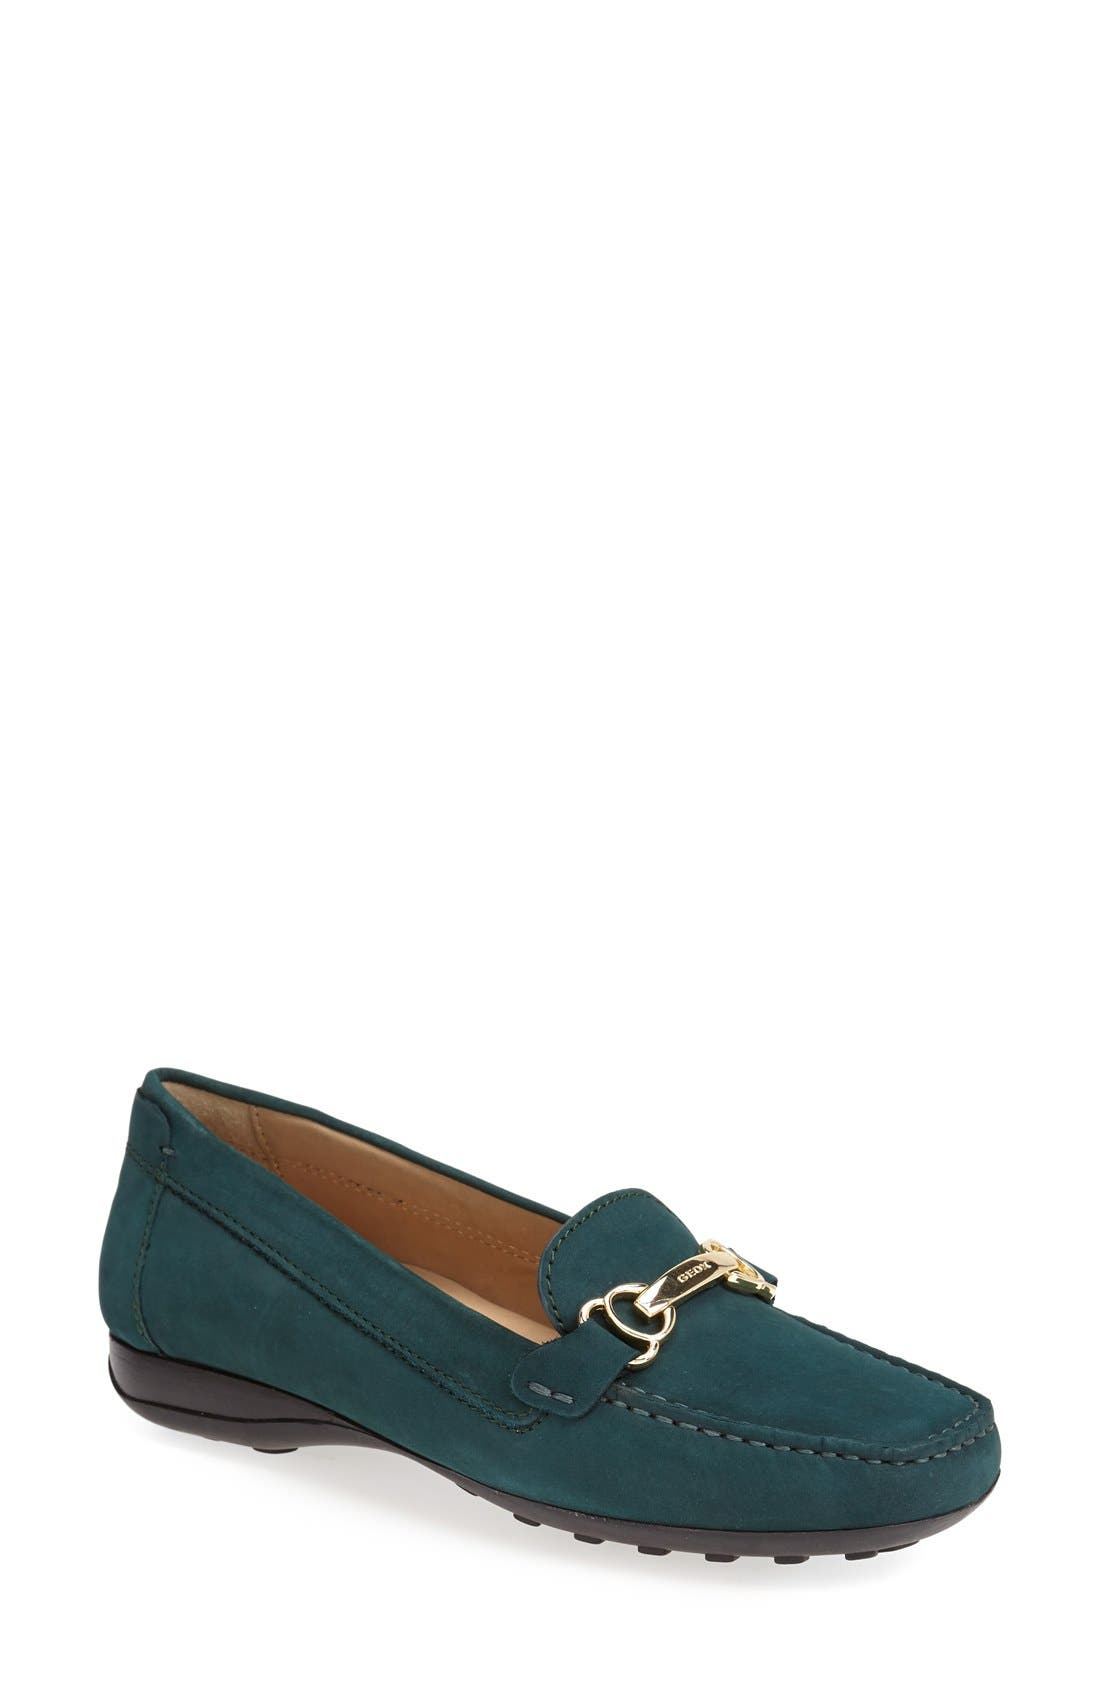 Euro 67 Loafer,                             Alternate thumbnail 23, color,